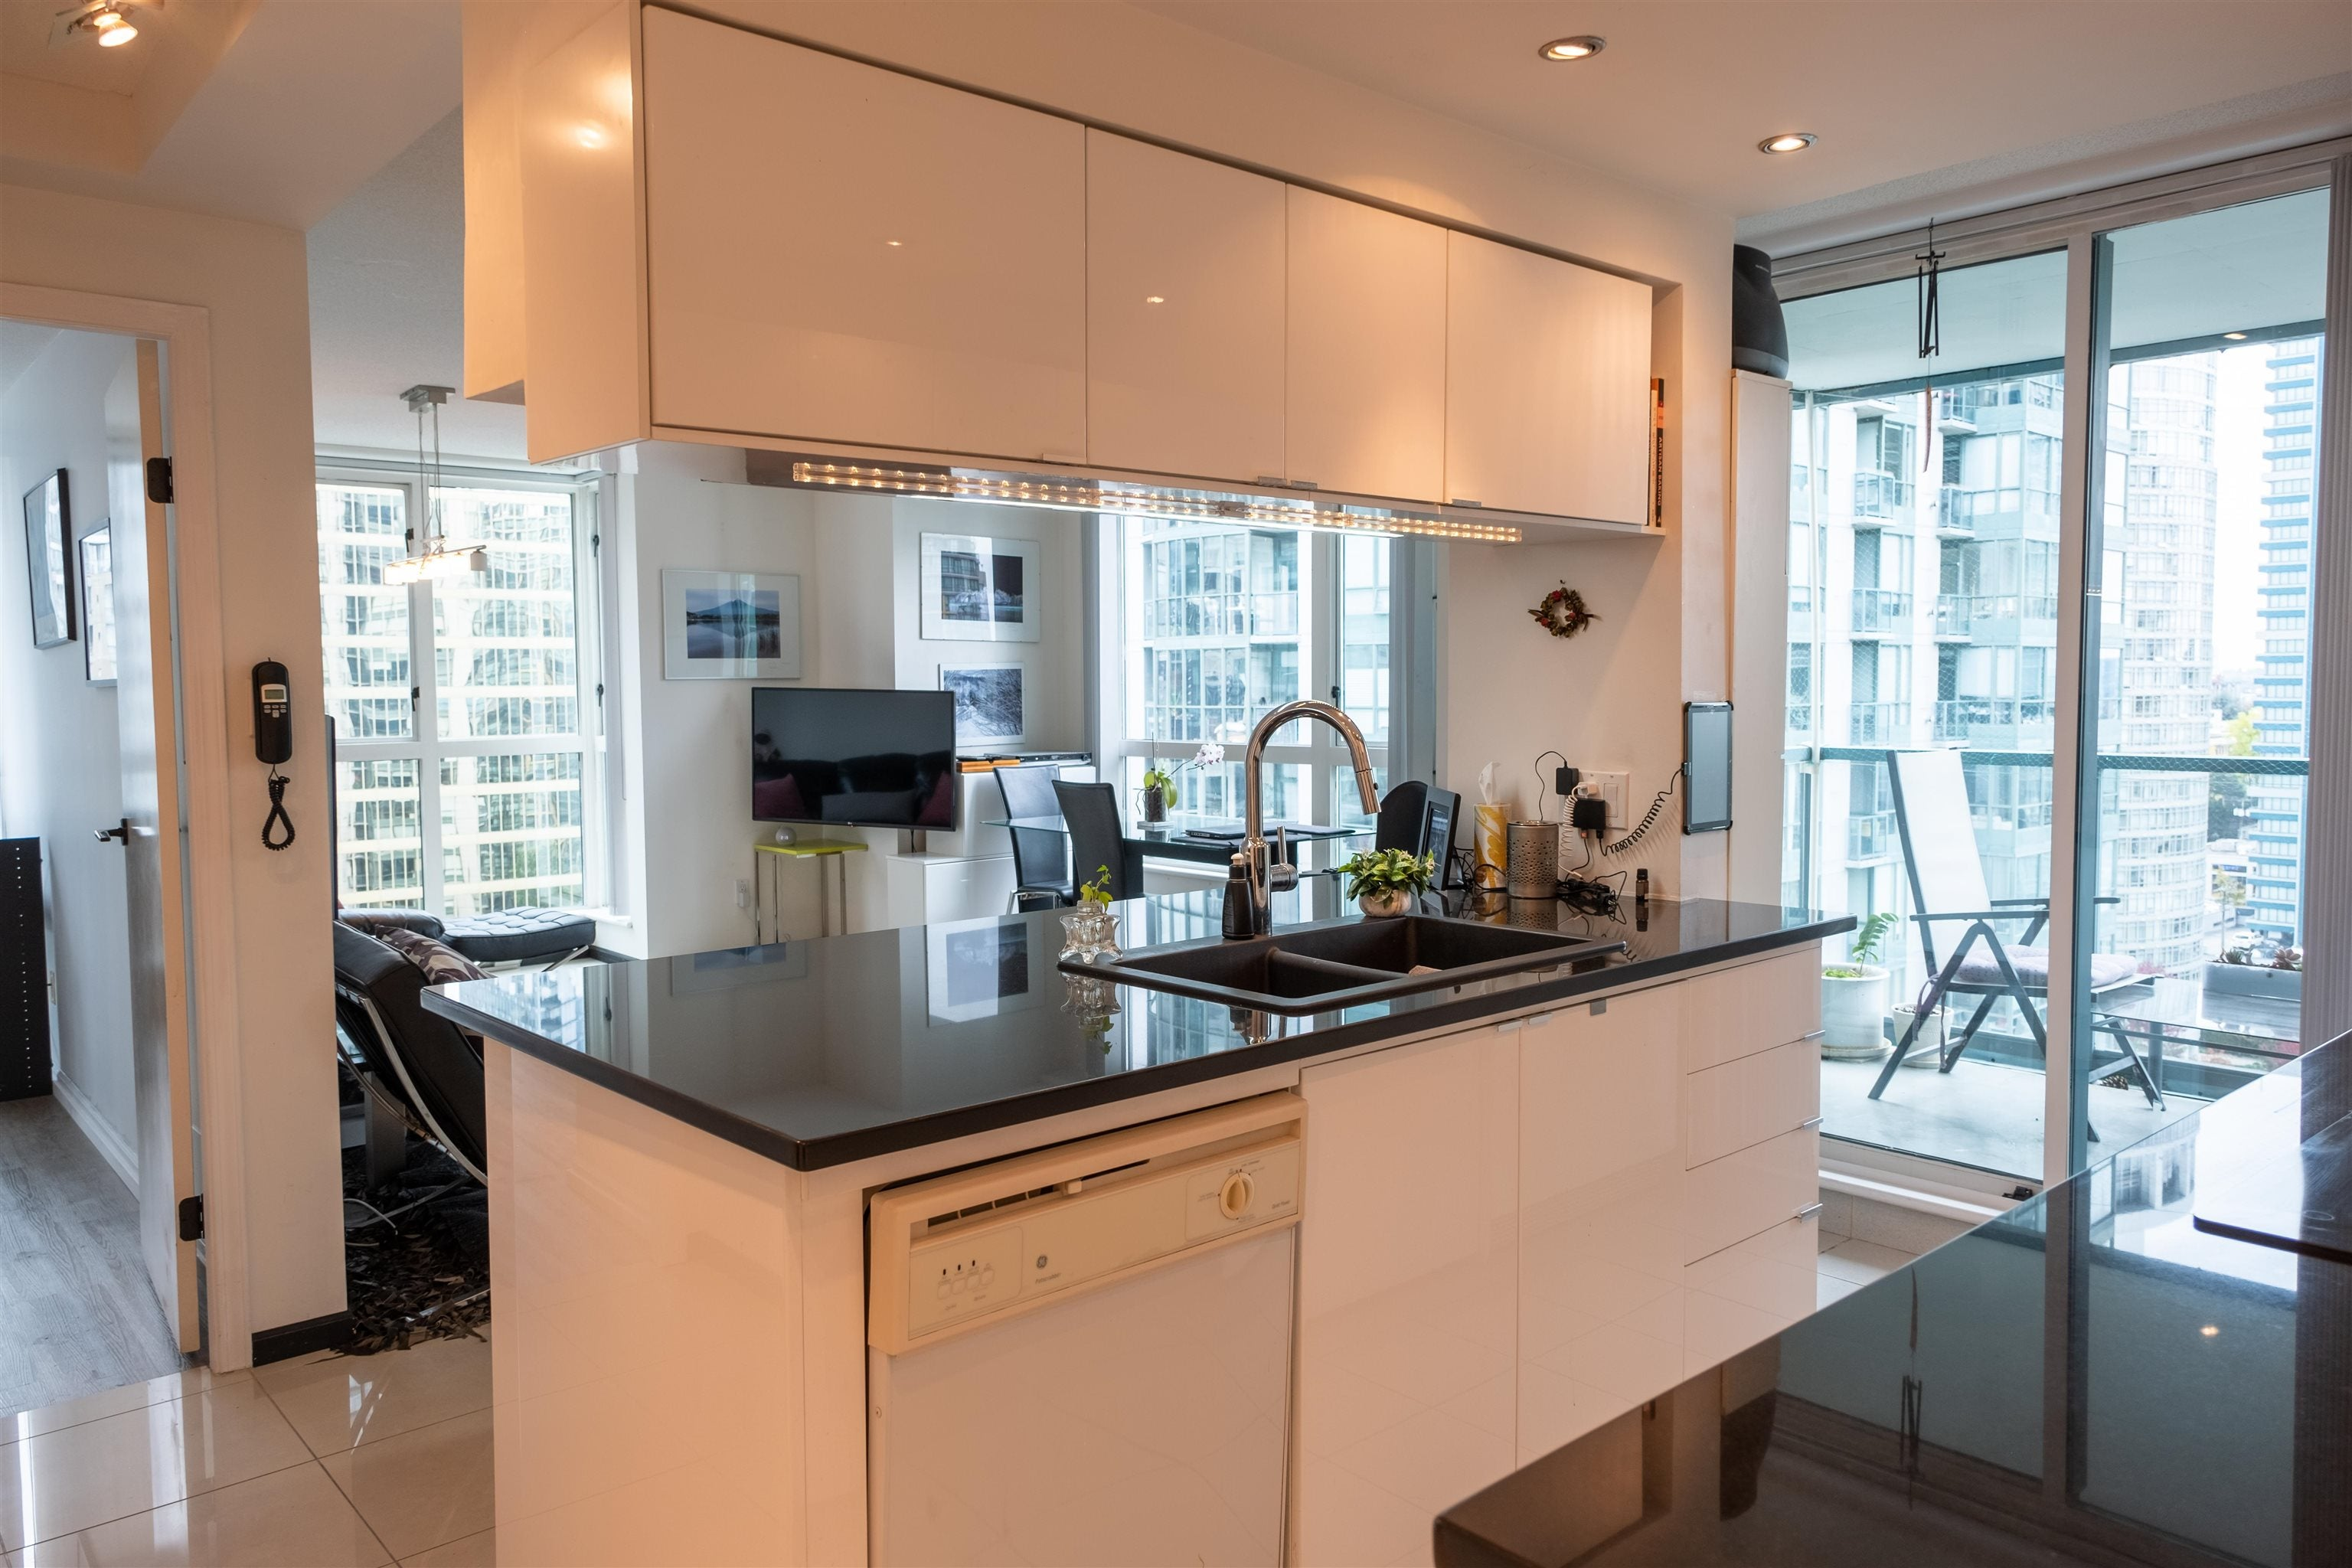 2206 1238 MELVILLE STREET - Coal Harbour Apartment/Condo for sale, 2 Bedrooms (R2626740) - #1